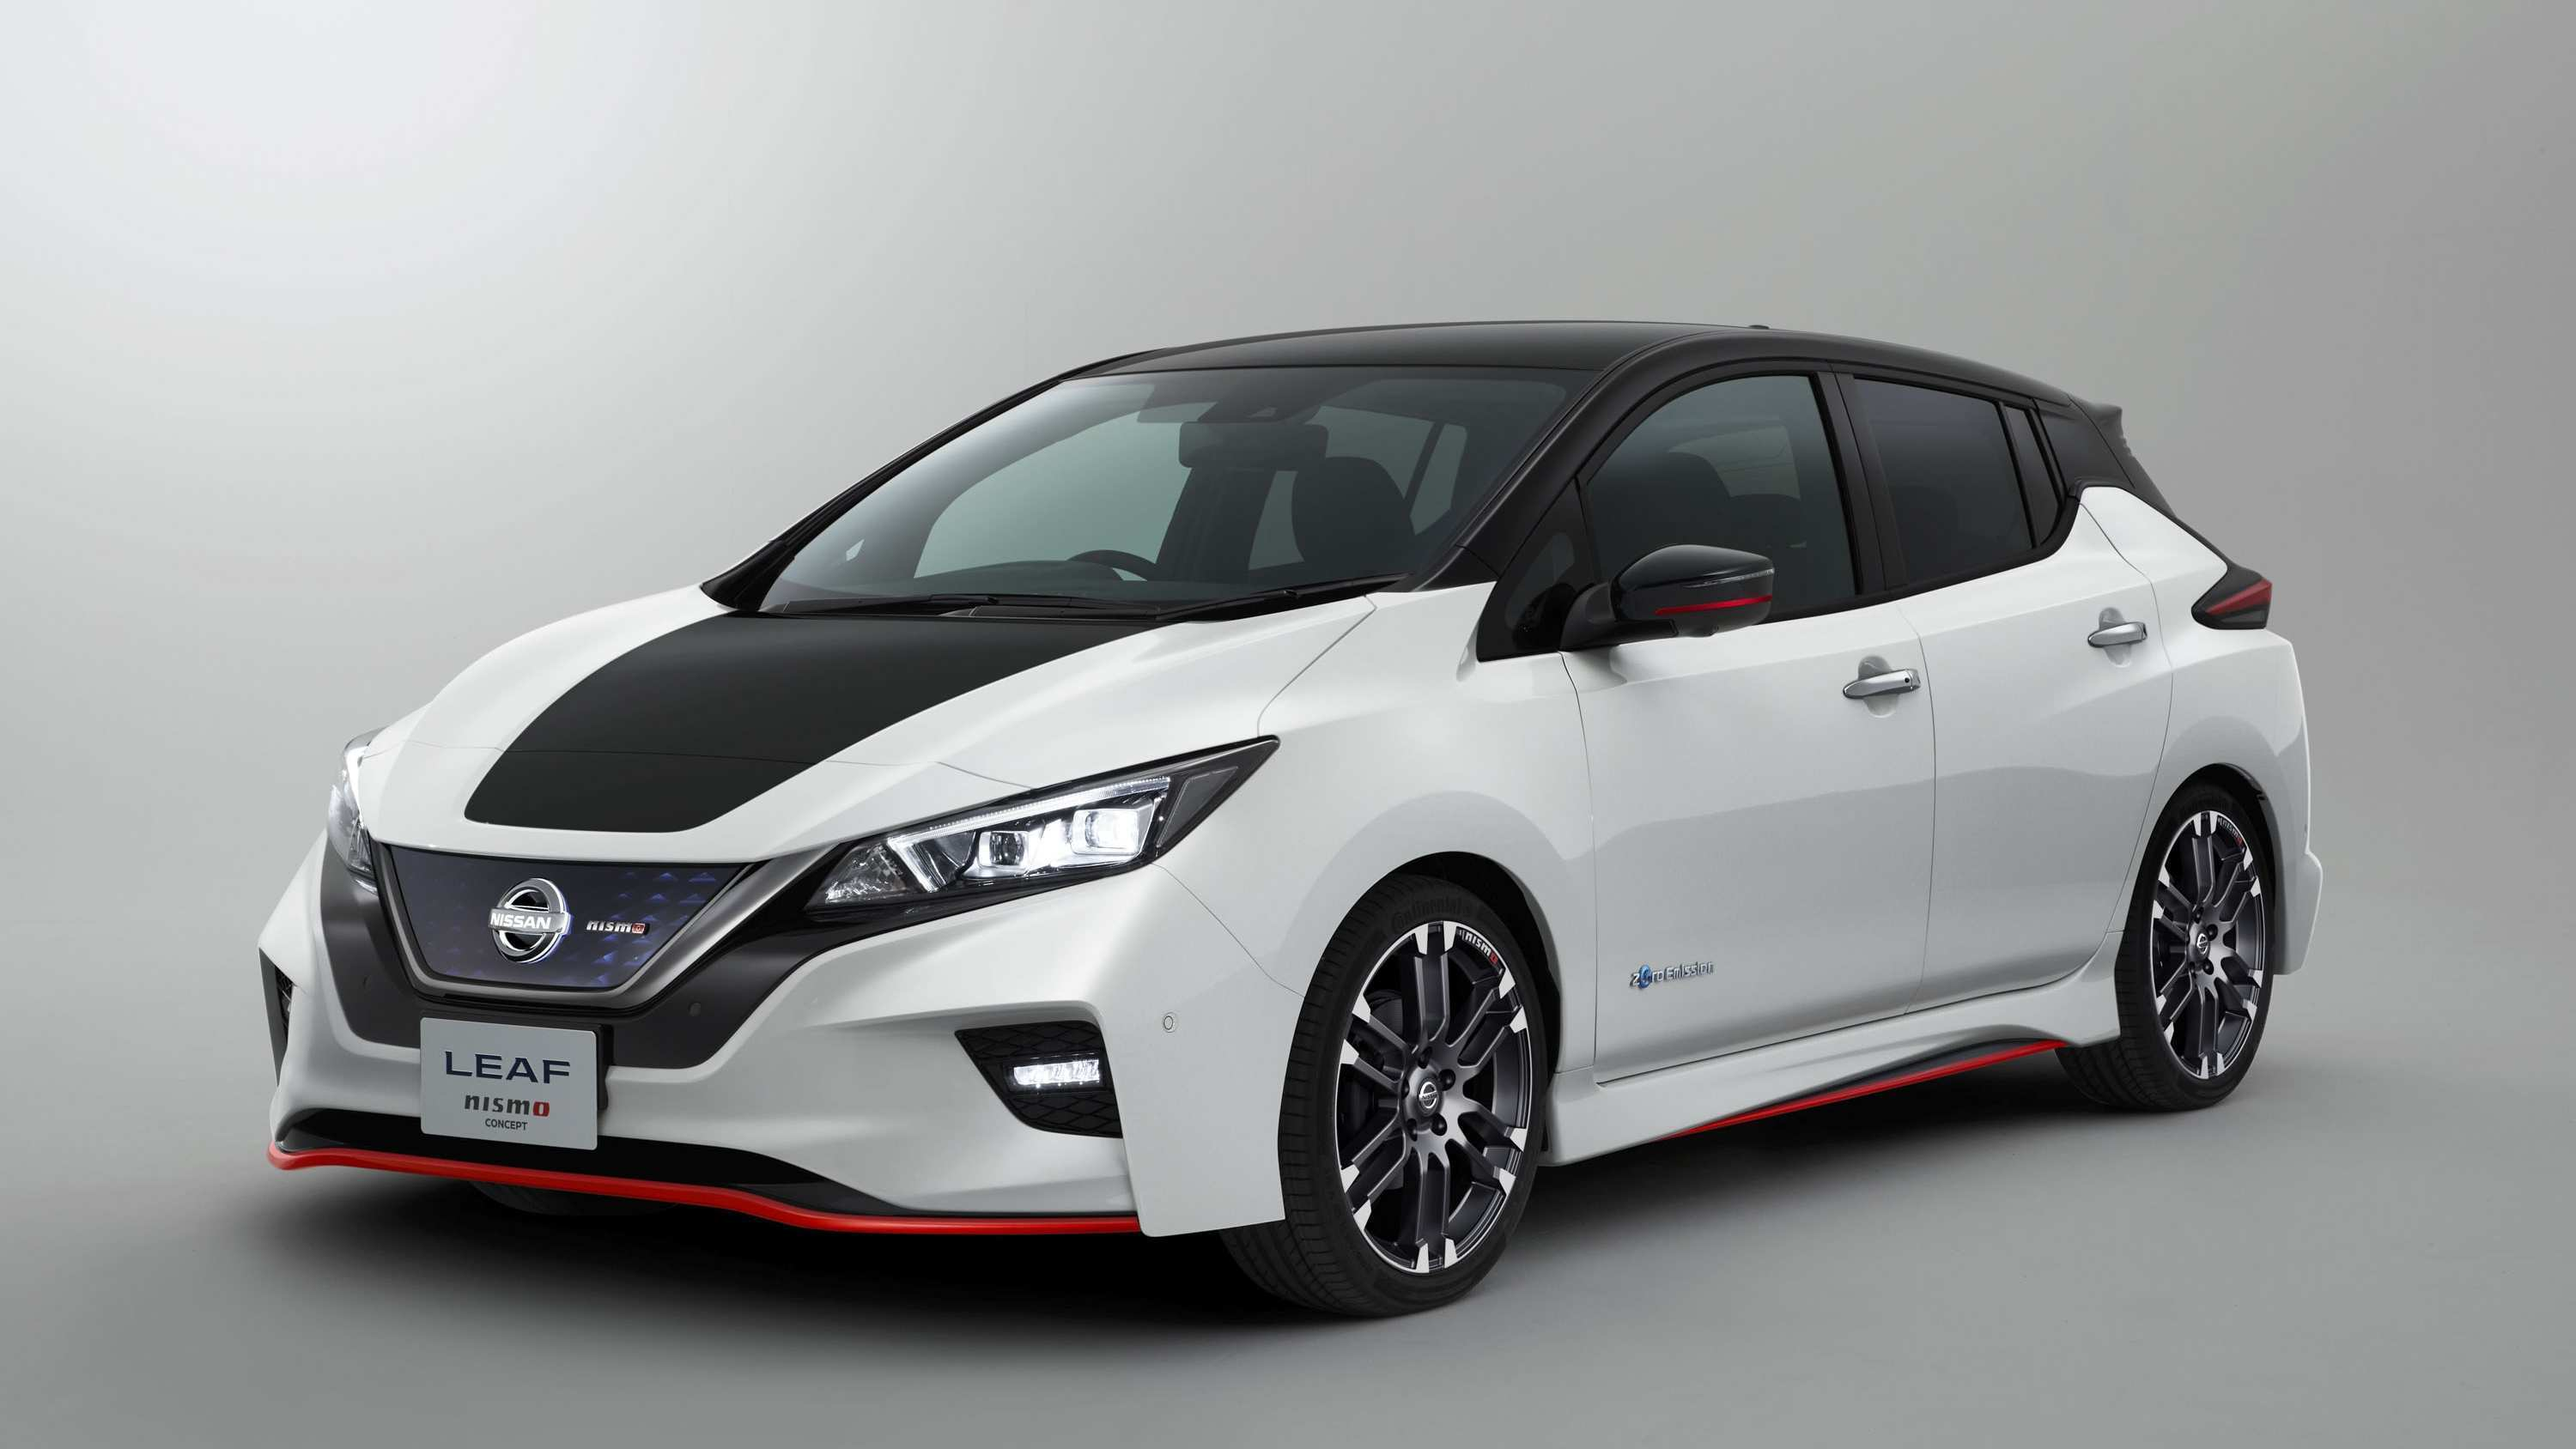 84 Great Nissan Leaf Nismo 2019 Performance And New Engine Style with Nissan Leaf Nismo 2019 Performance And New Engine